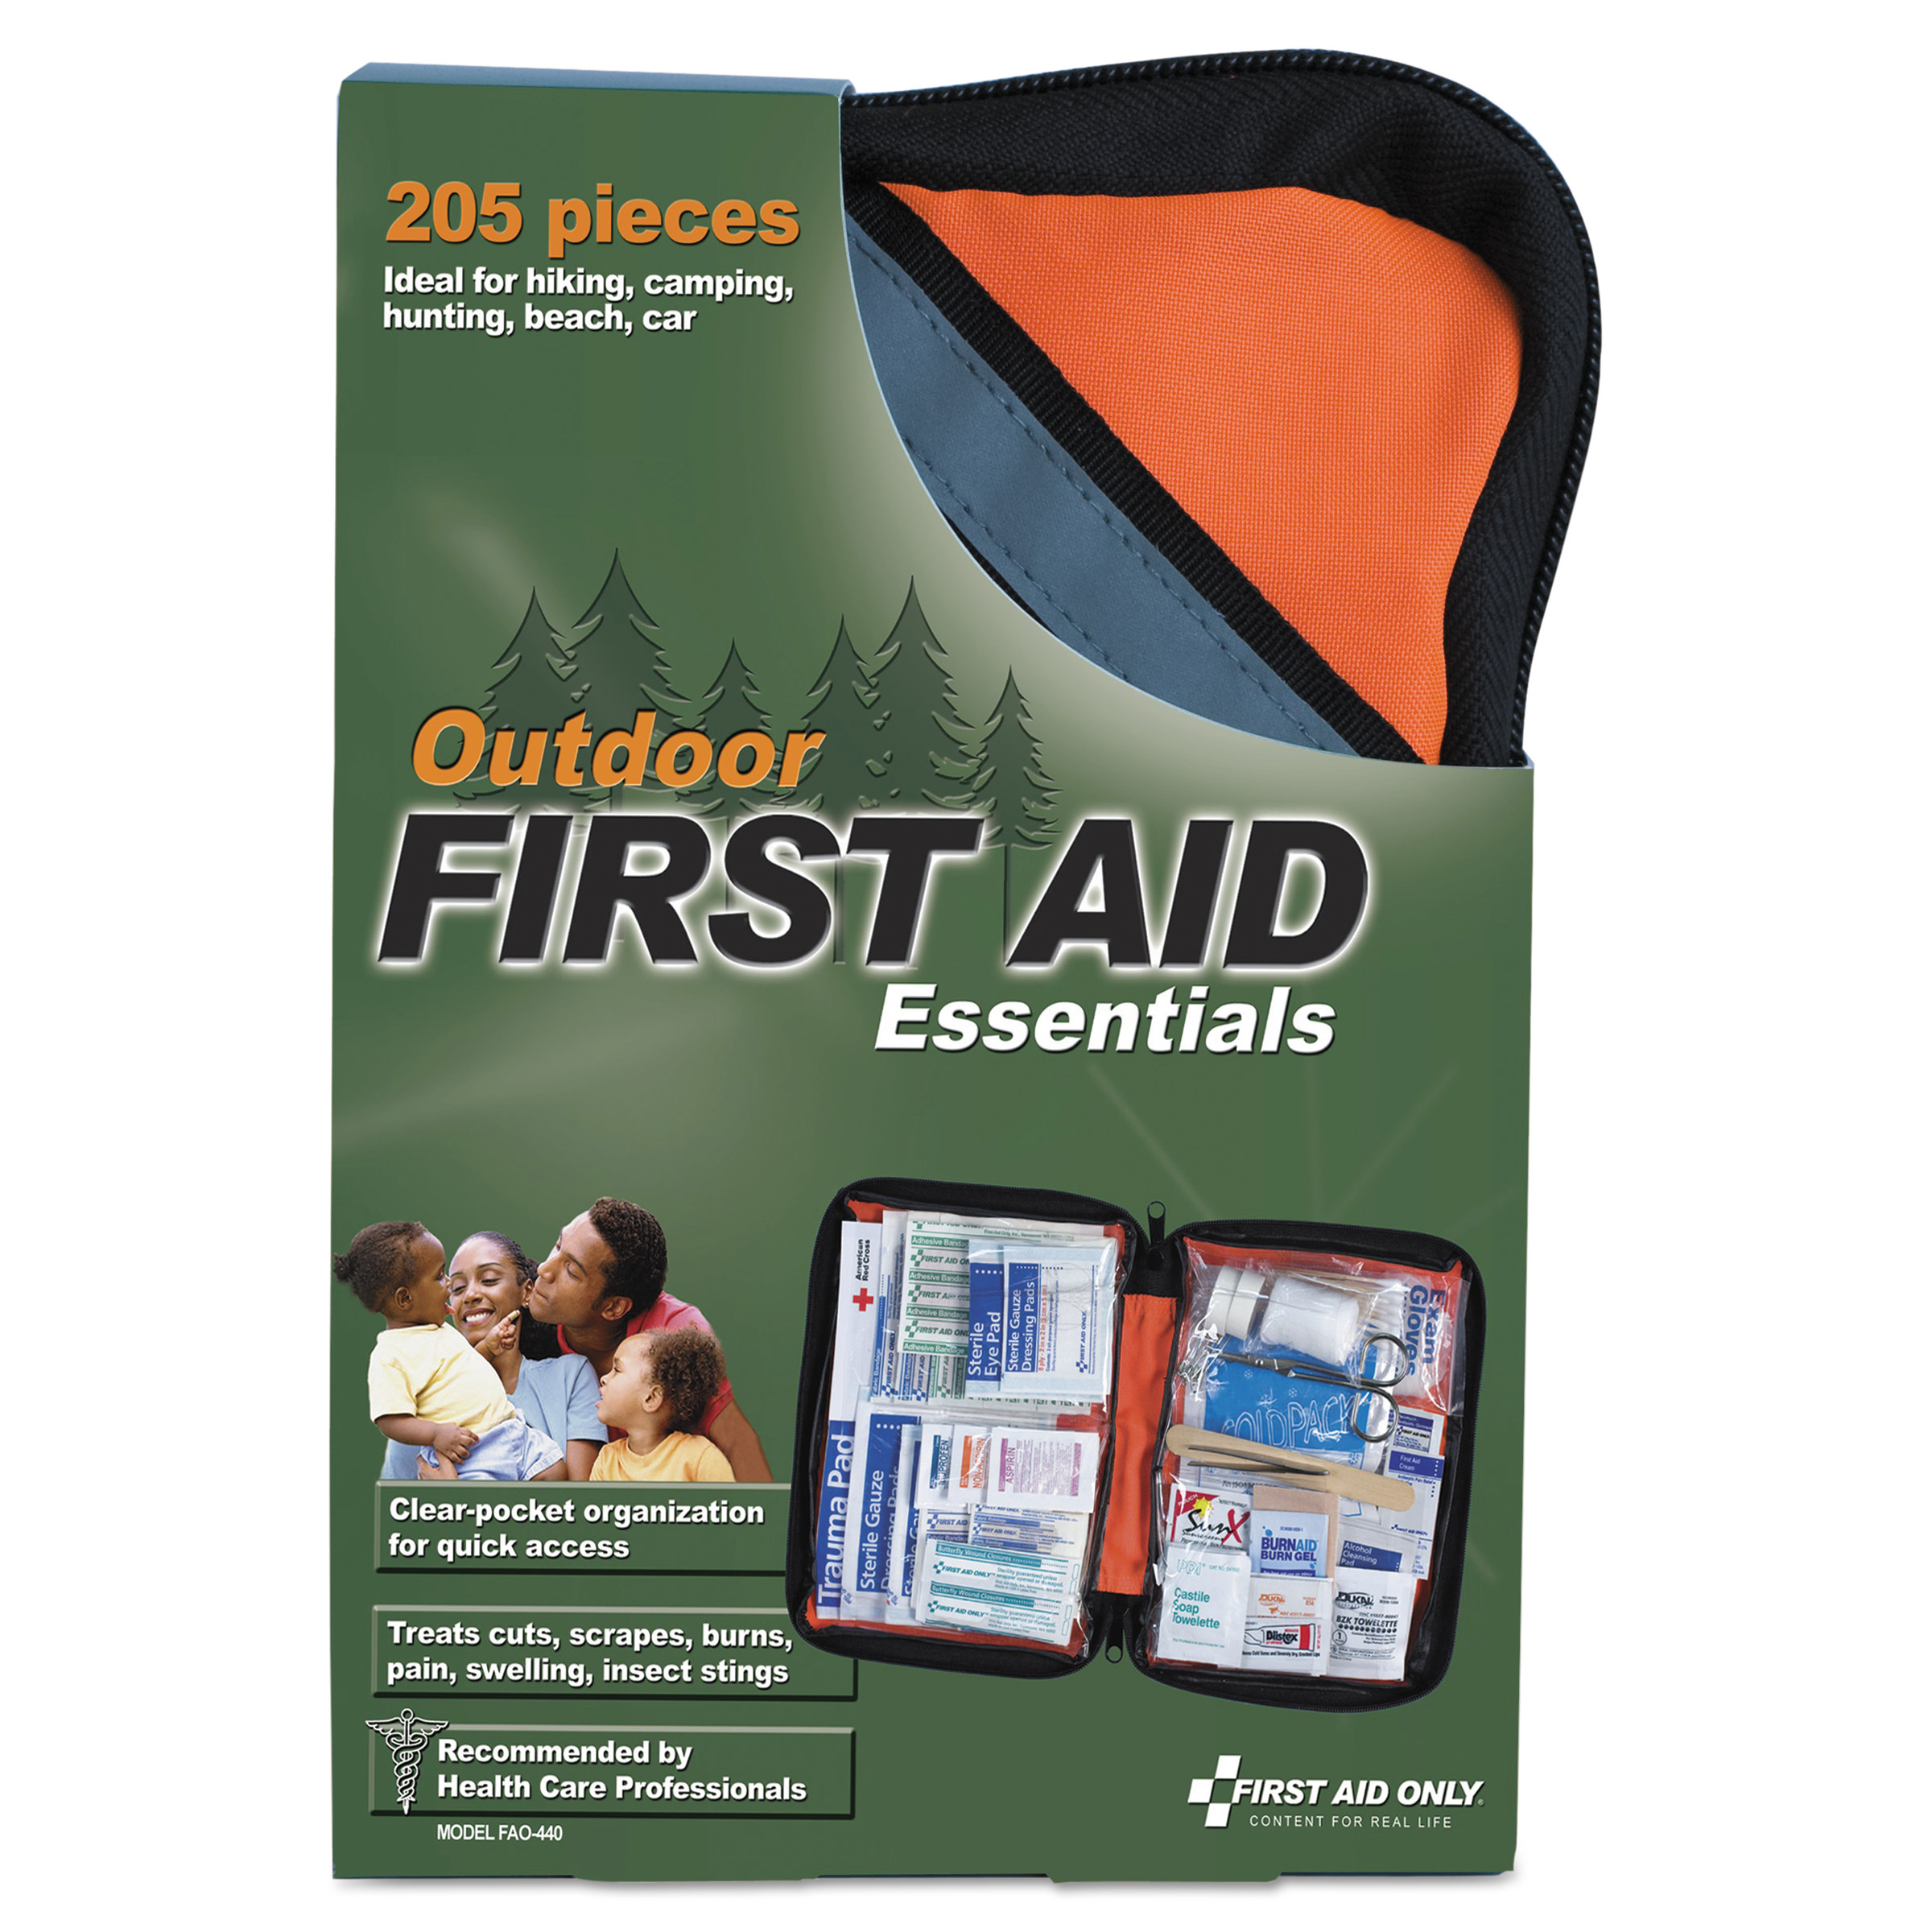 First Aid Only Outdoor Softsided First Aid Kit for 10 People, 205 Pieces Kit by FIRST AID ONLY, INC.